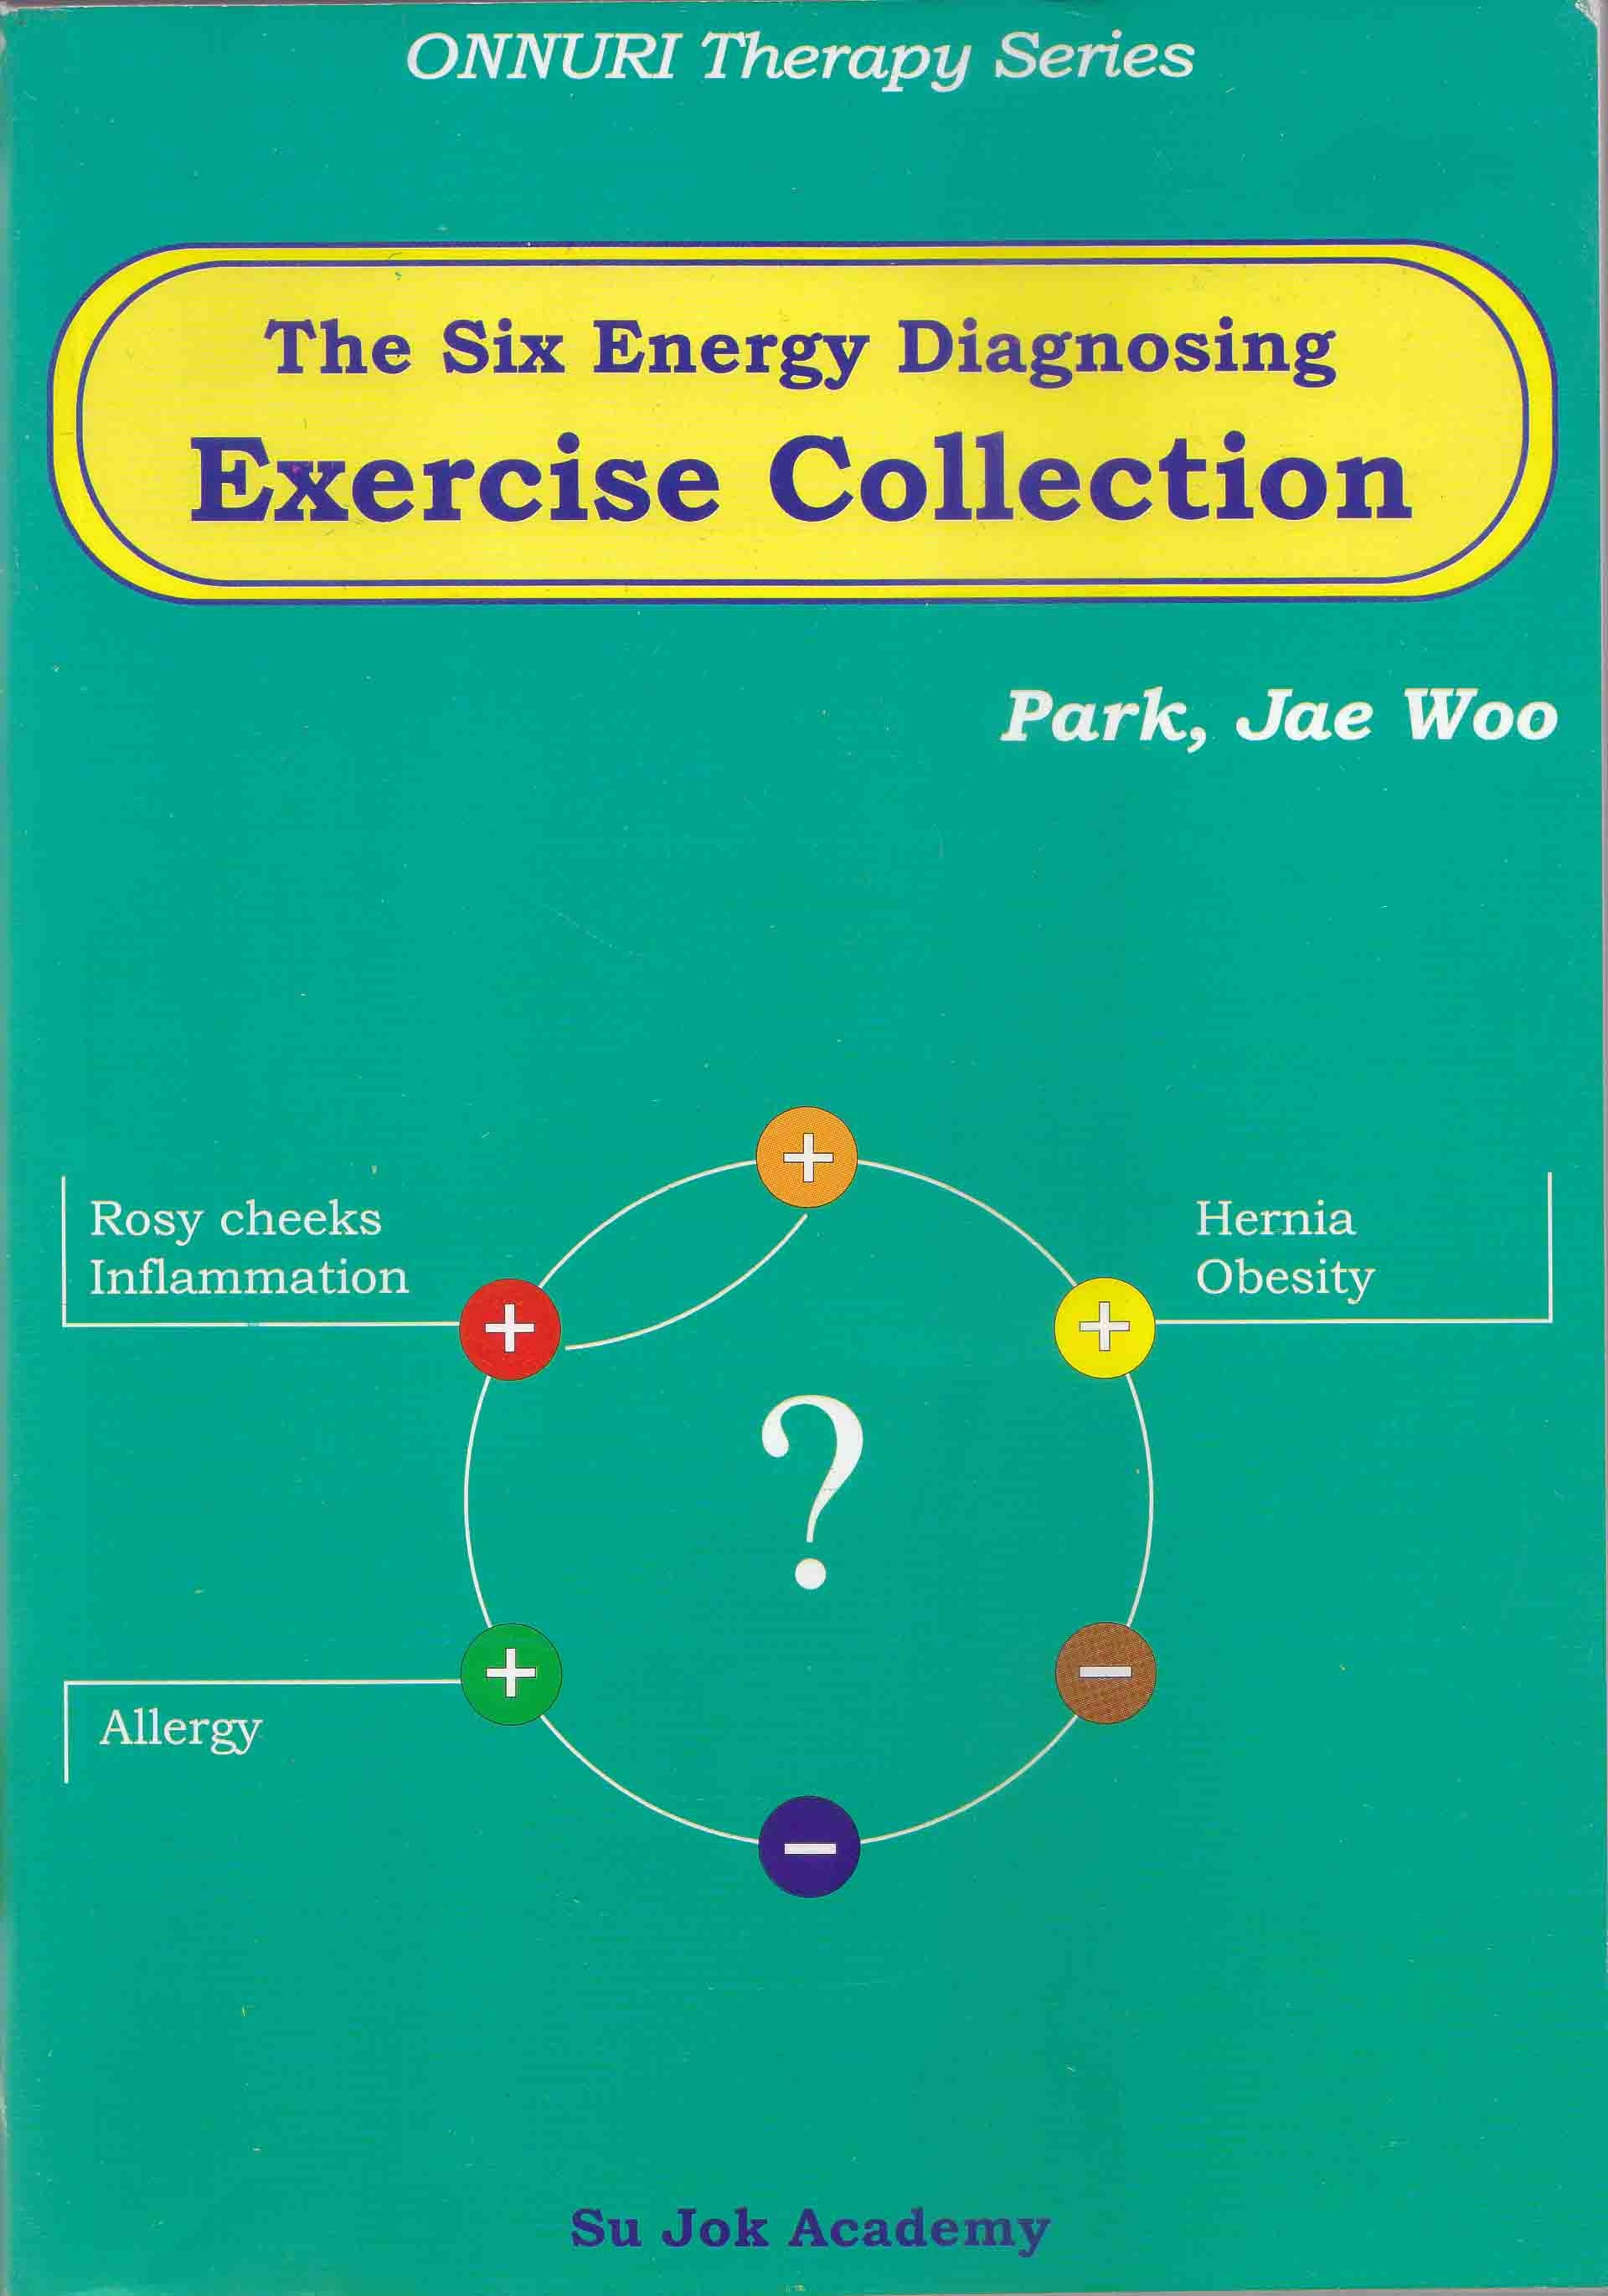 The Six Energy Diagnosing Exercise Collection  - SJK